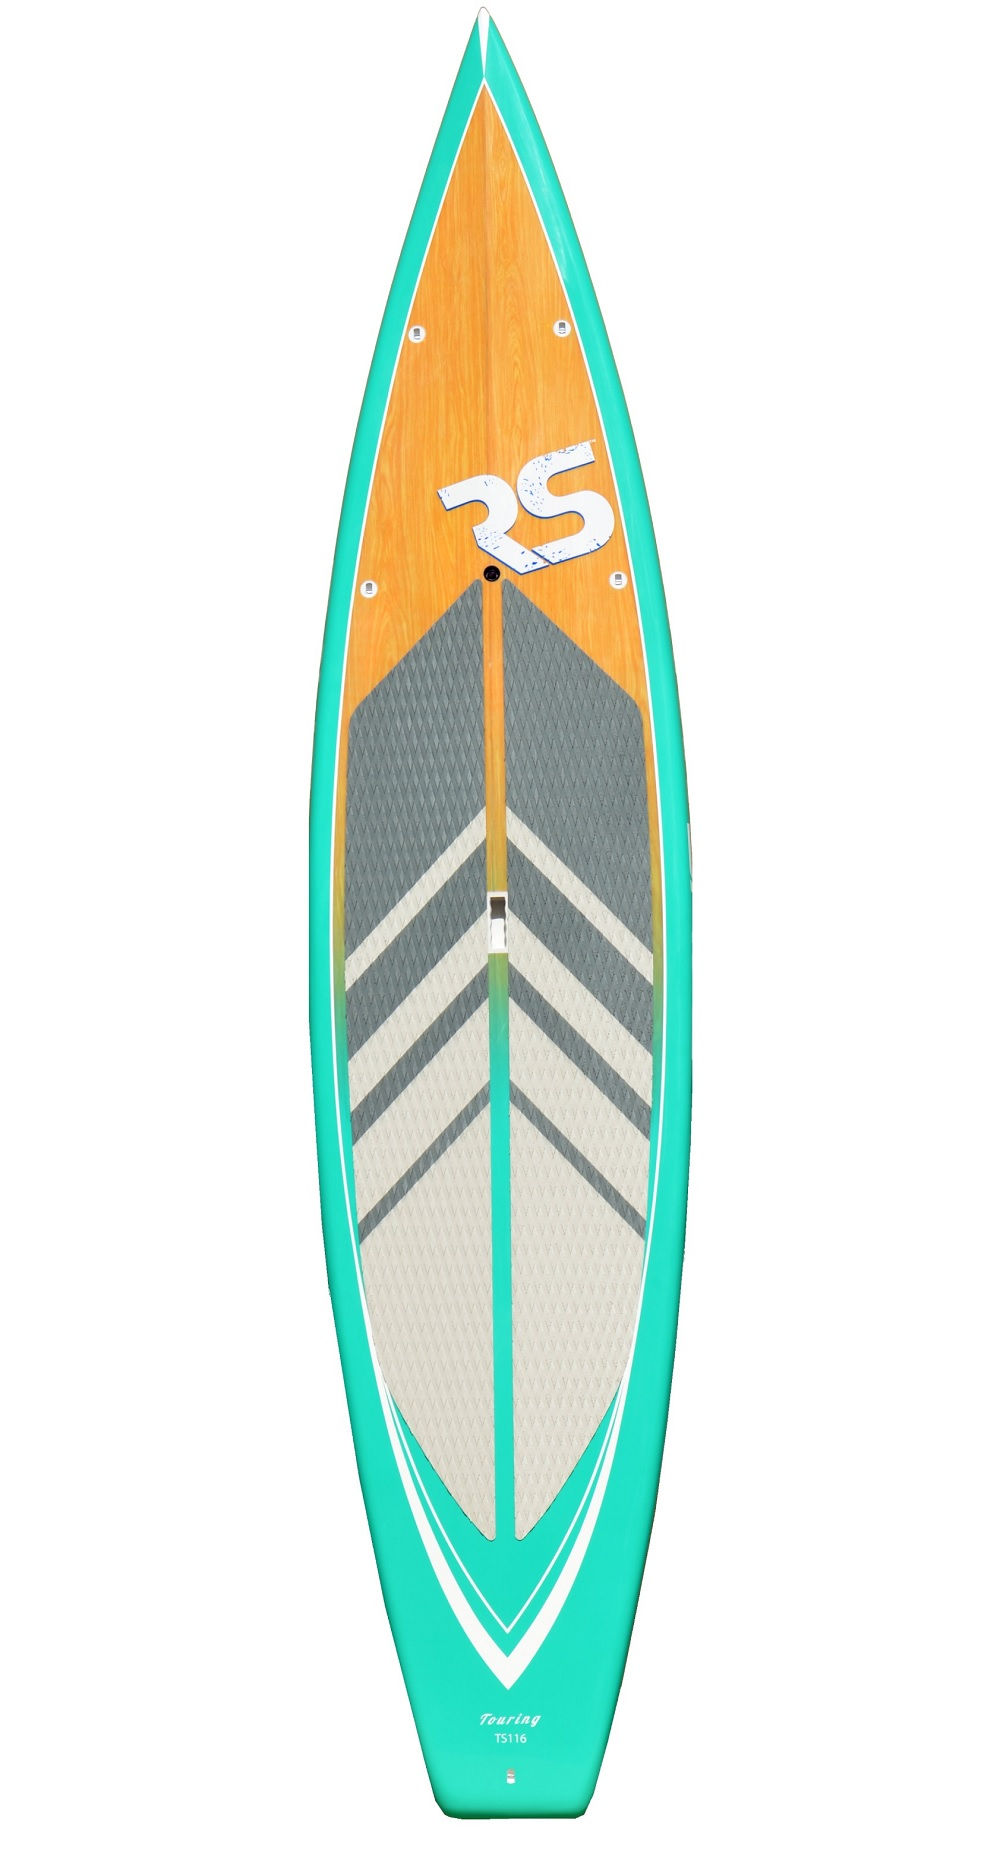 "Rave Sports 02700 Touring 11'6"" Fiberglass SeaBreeze Stand Up Paddle Board by Overstock"